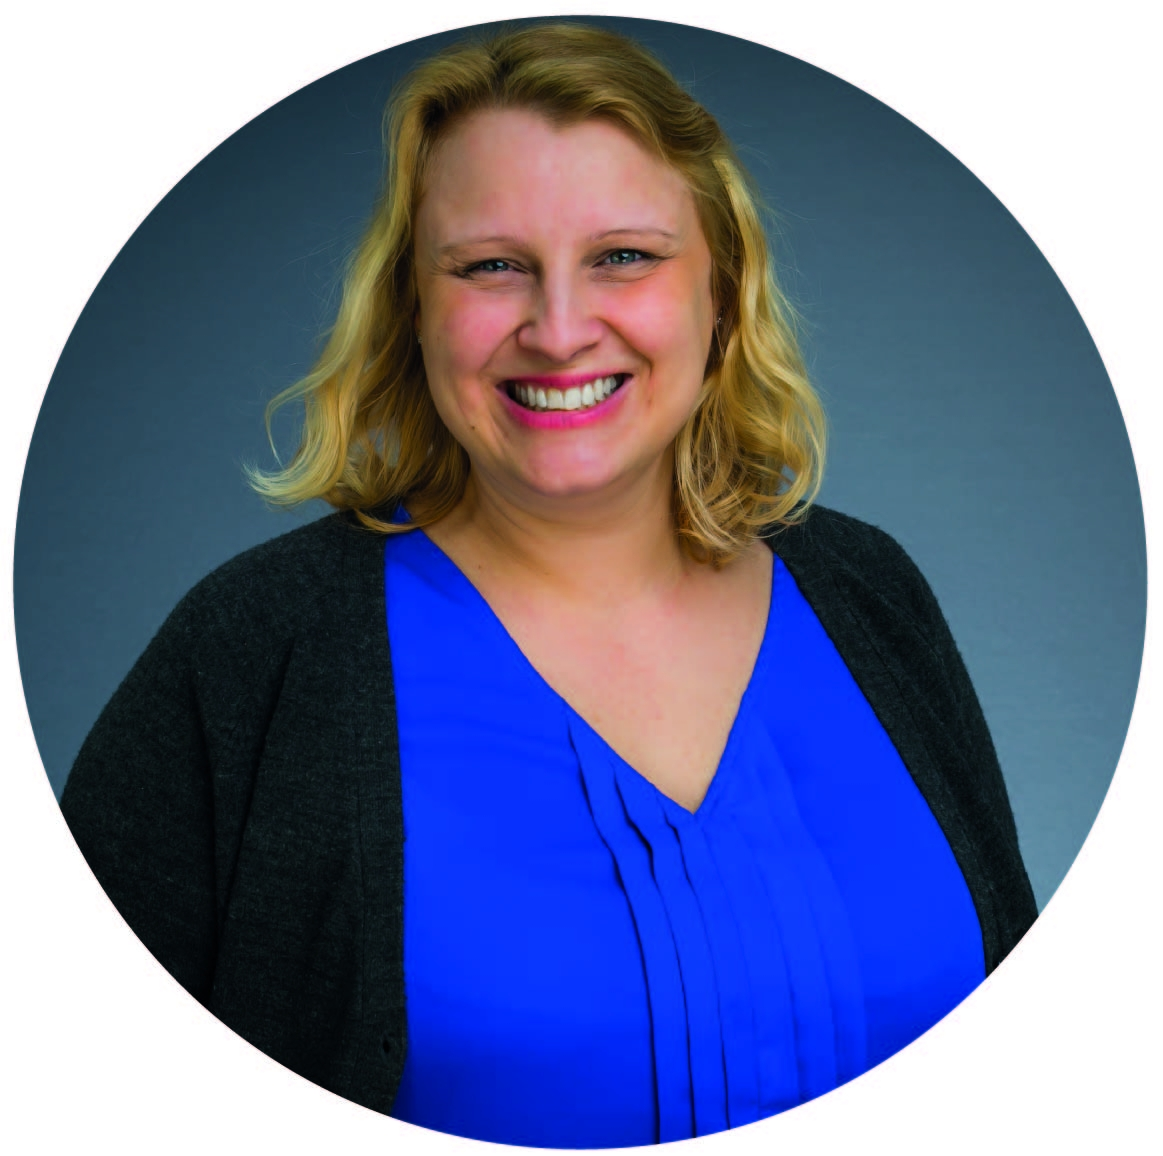 Heather M - Sales Account Manager